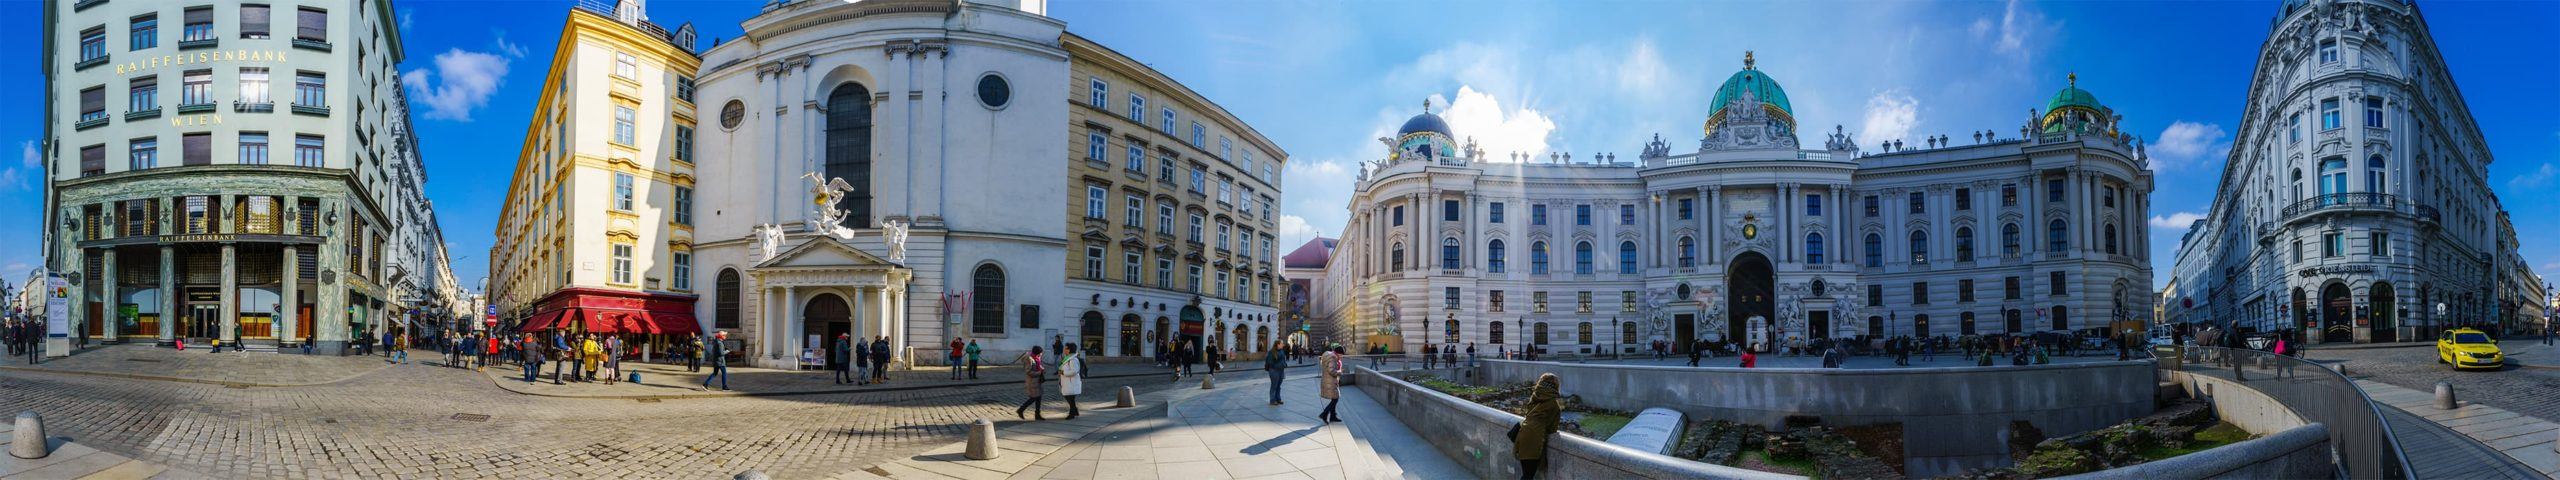 wien-panorama-michaelerplatz